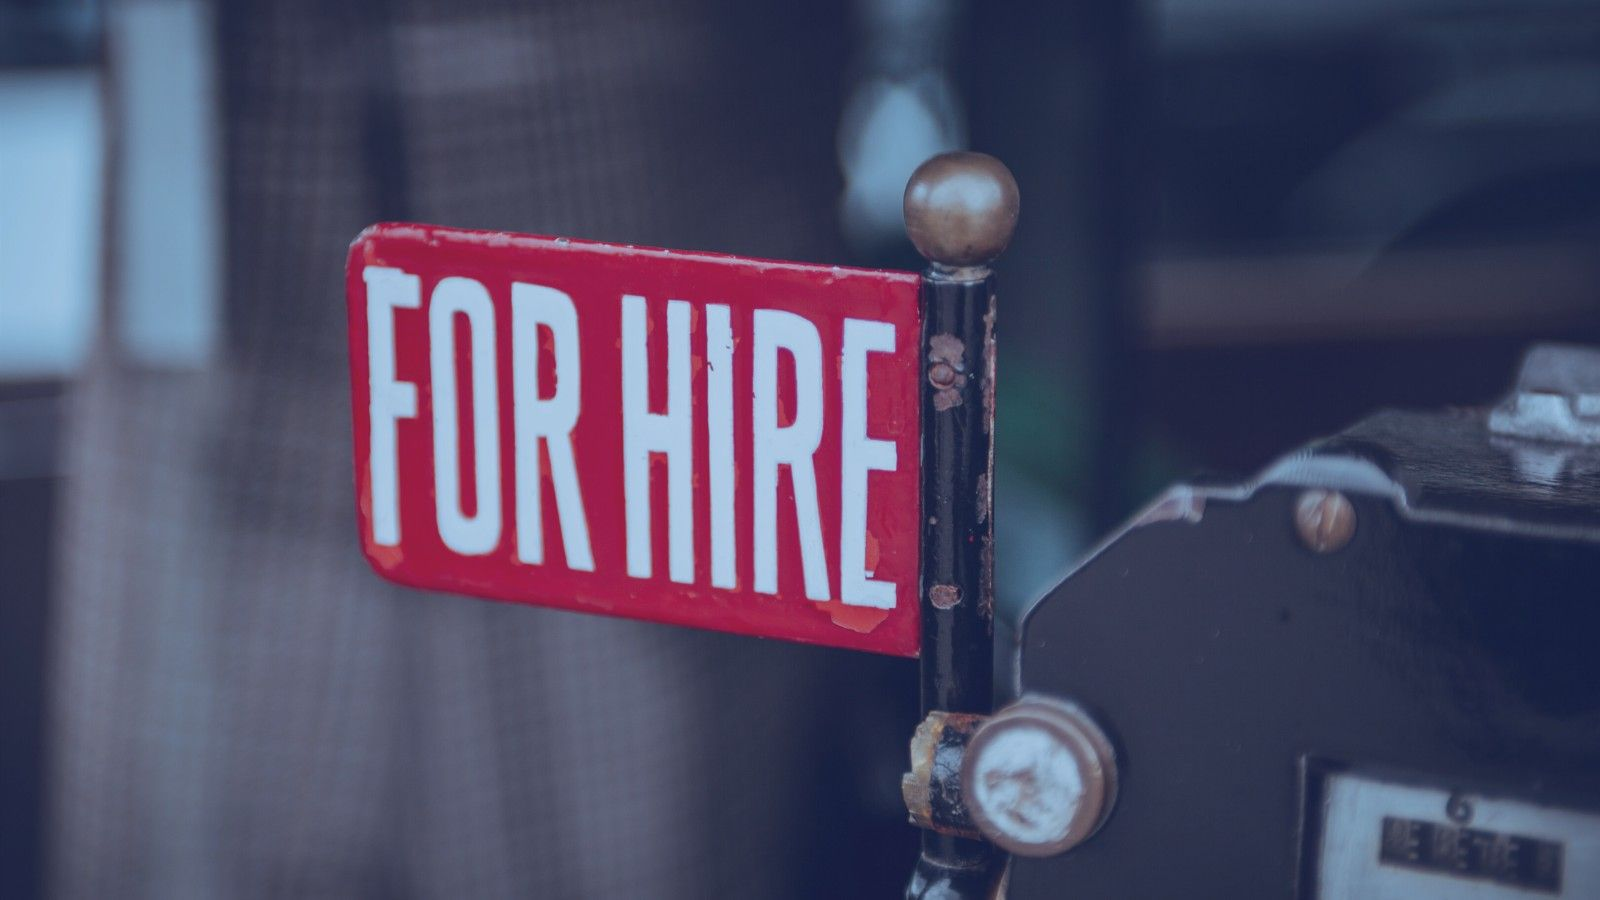 Increase Candidates by Adding Flexible Working